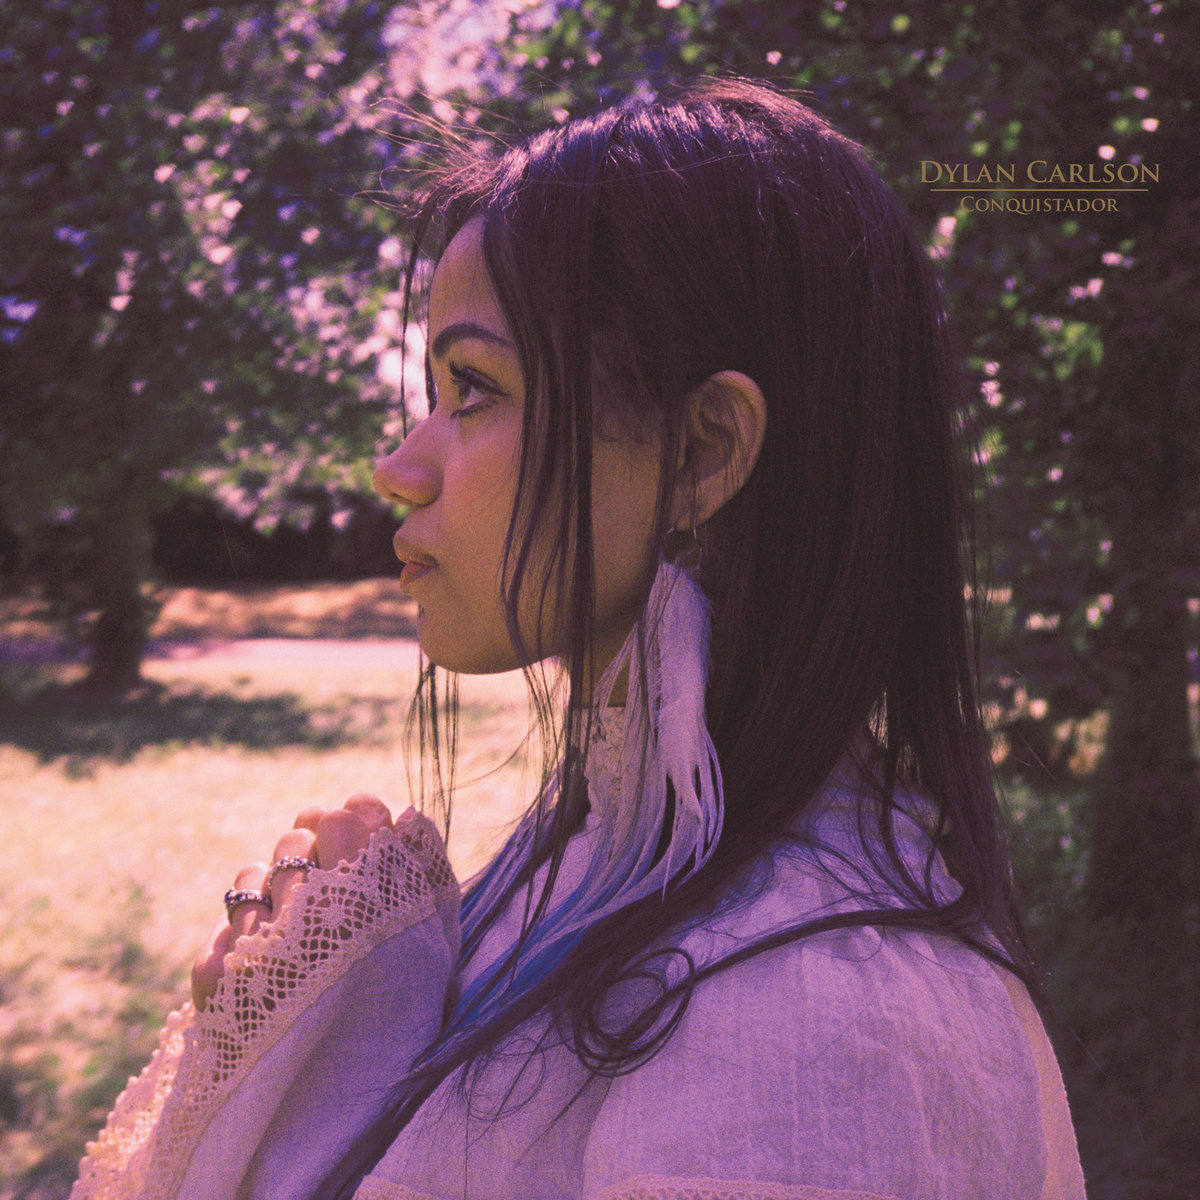 """Album Review: Conquistador by Dylan Carlson -   To switch gears from last weeks review JUST A LITTLE BIT… I present to you Earth mastermind Dylan Carlson's 'Conquistador.' Conquistador is an imaginative, instrumental composition of psych-drone electric guitar ambiance and… uh.. that's pretty much it. But, I do not declare that a bad thing, necessarily. This record is stated to be an """"imaginary western"""" chronicling the historic journey of said conquistador setting out to explore the present day American Southwest a looong ass time ago. If you're a history and music nerd like me, sounds damn intriguing! And it is, well, mostly is, anyway. But if you do not declare yourself a history or complete music nerd (guitar especially), I might want to skip over this selection if I were you.  That being said, this album is presented and unfolds much like a film narrative. With the opening title track aptly clocking in at 13:13, this droning and looping piece sets the tone for the rest of the record: slow and hypnotic. The second track, """"When the Horses Were Shorn of Their Hooves"""" cranks it in to overdrive just enough for it to be noticeable and introduces any semblance of the traditional metal """"riff."""" Engulfed with enough reverb and distortion it ends with enough time to settle the listener into the sound effect centered transitional one minute """"And Then the Crows Descended"""" third track. From there, with the next track titled """"Scorpions in Their Mouths,"""" this is where I expected things to really pick up for the album, as this would be the """"climax"""" of the story arc (and the title is just freakin' cool as hell), but unfortunately this is where it fell flat for me. Other than a few percussion additions, its more of the same kind of combination of the first two tracks and dare I say, boring? If any track on this record had an opportunity to blow the listener away, it was this one. But, hey, maybe that wasn't the point. I just feels to me like an intercepted touchdown pass. Finally, """